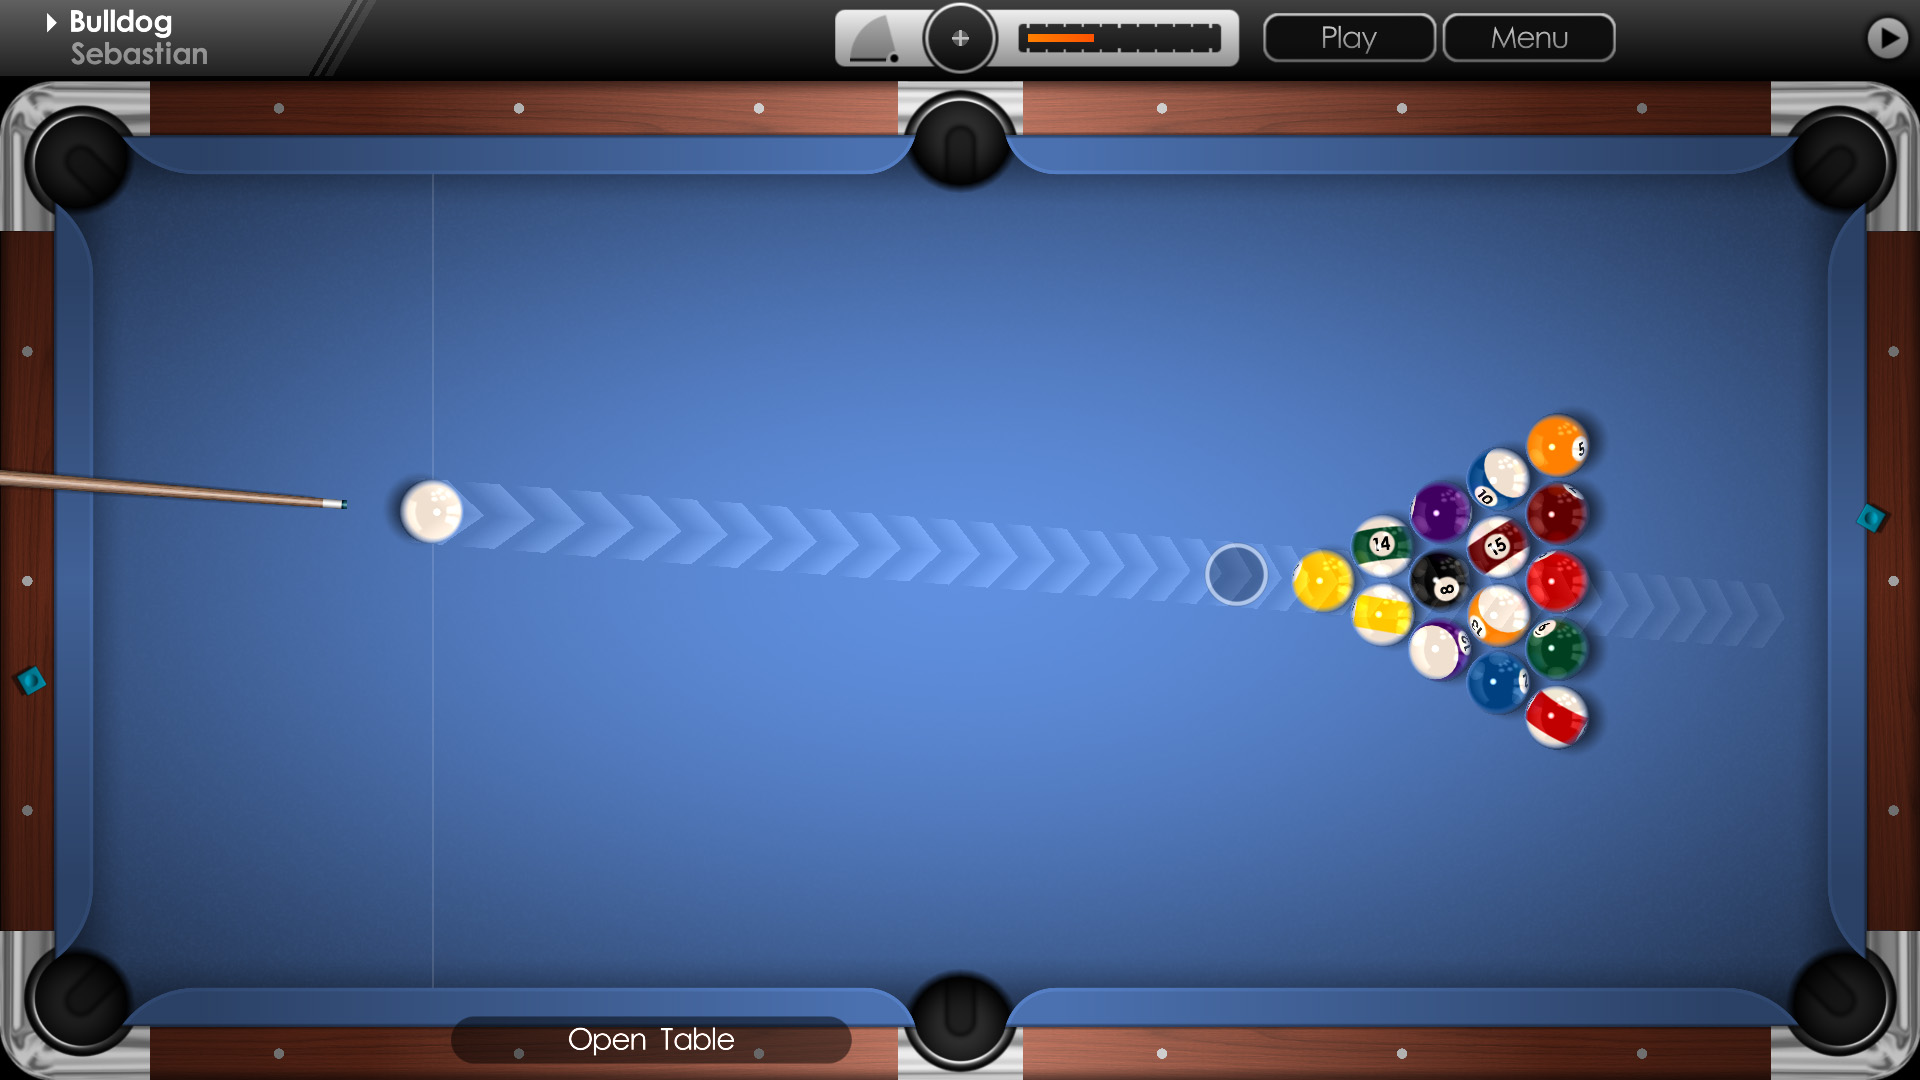 Download Cue Club 2 Pool Snooker Full Pc Game